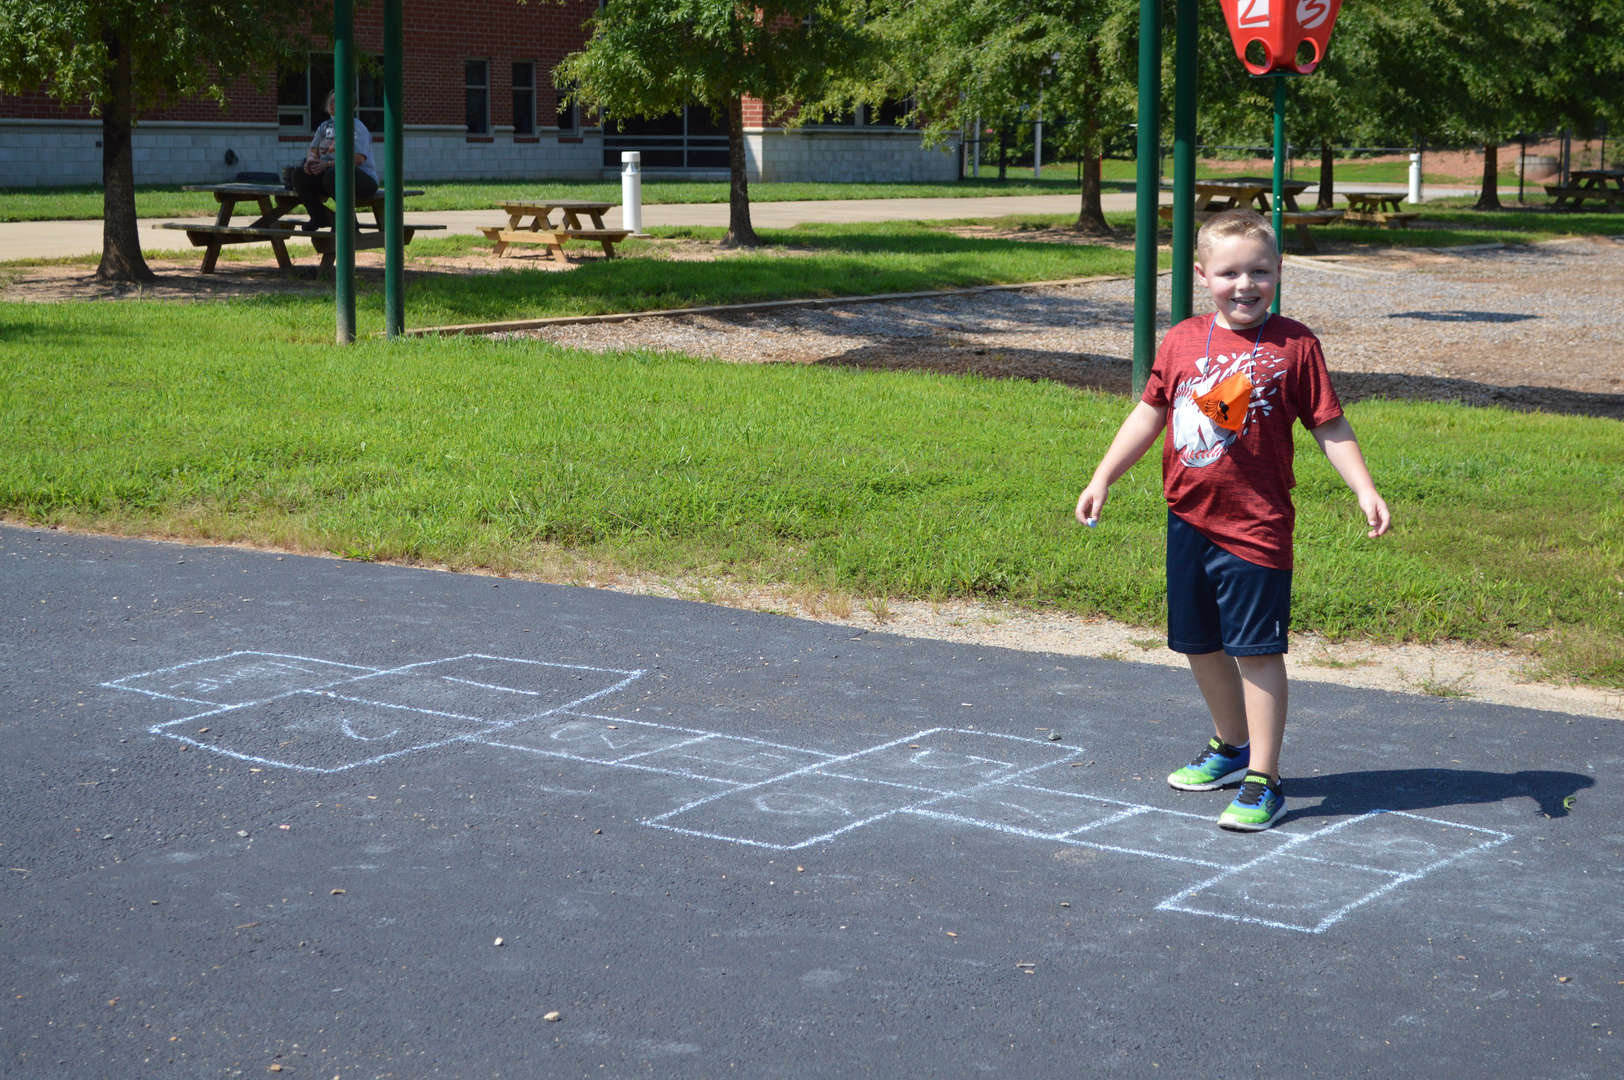 student playing hopscotch at recess